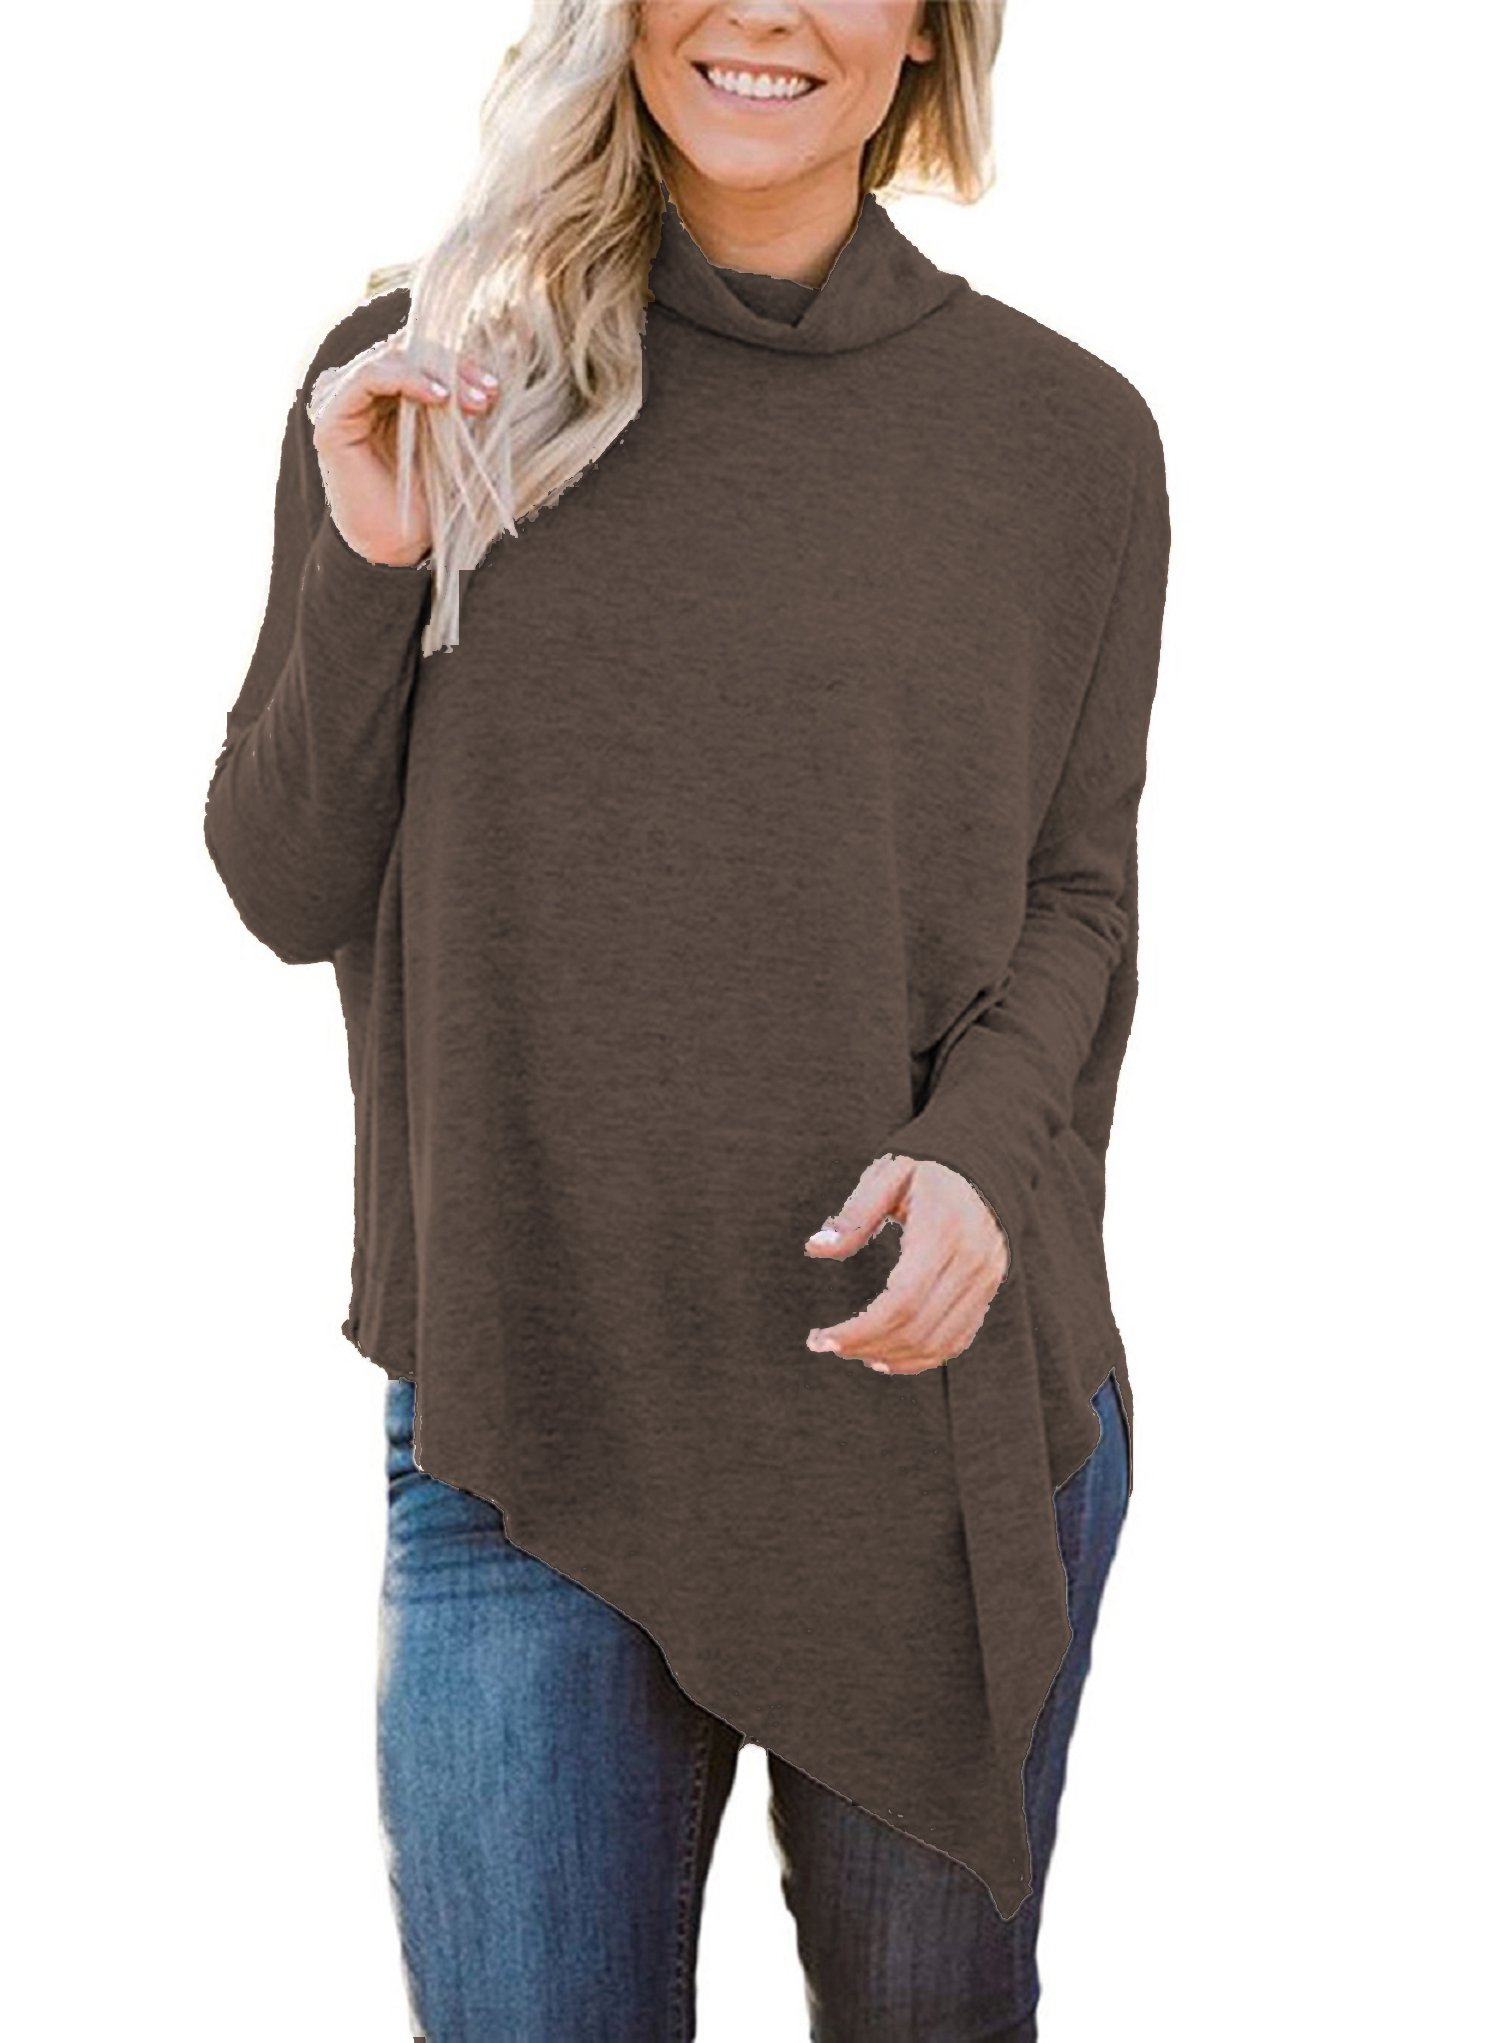 Hount Women's Casual Batwing Tunic Top Long Sleeve Plus Size Sweater (Small, Coffee)